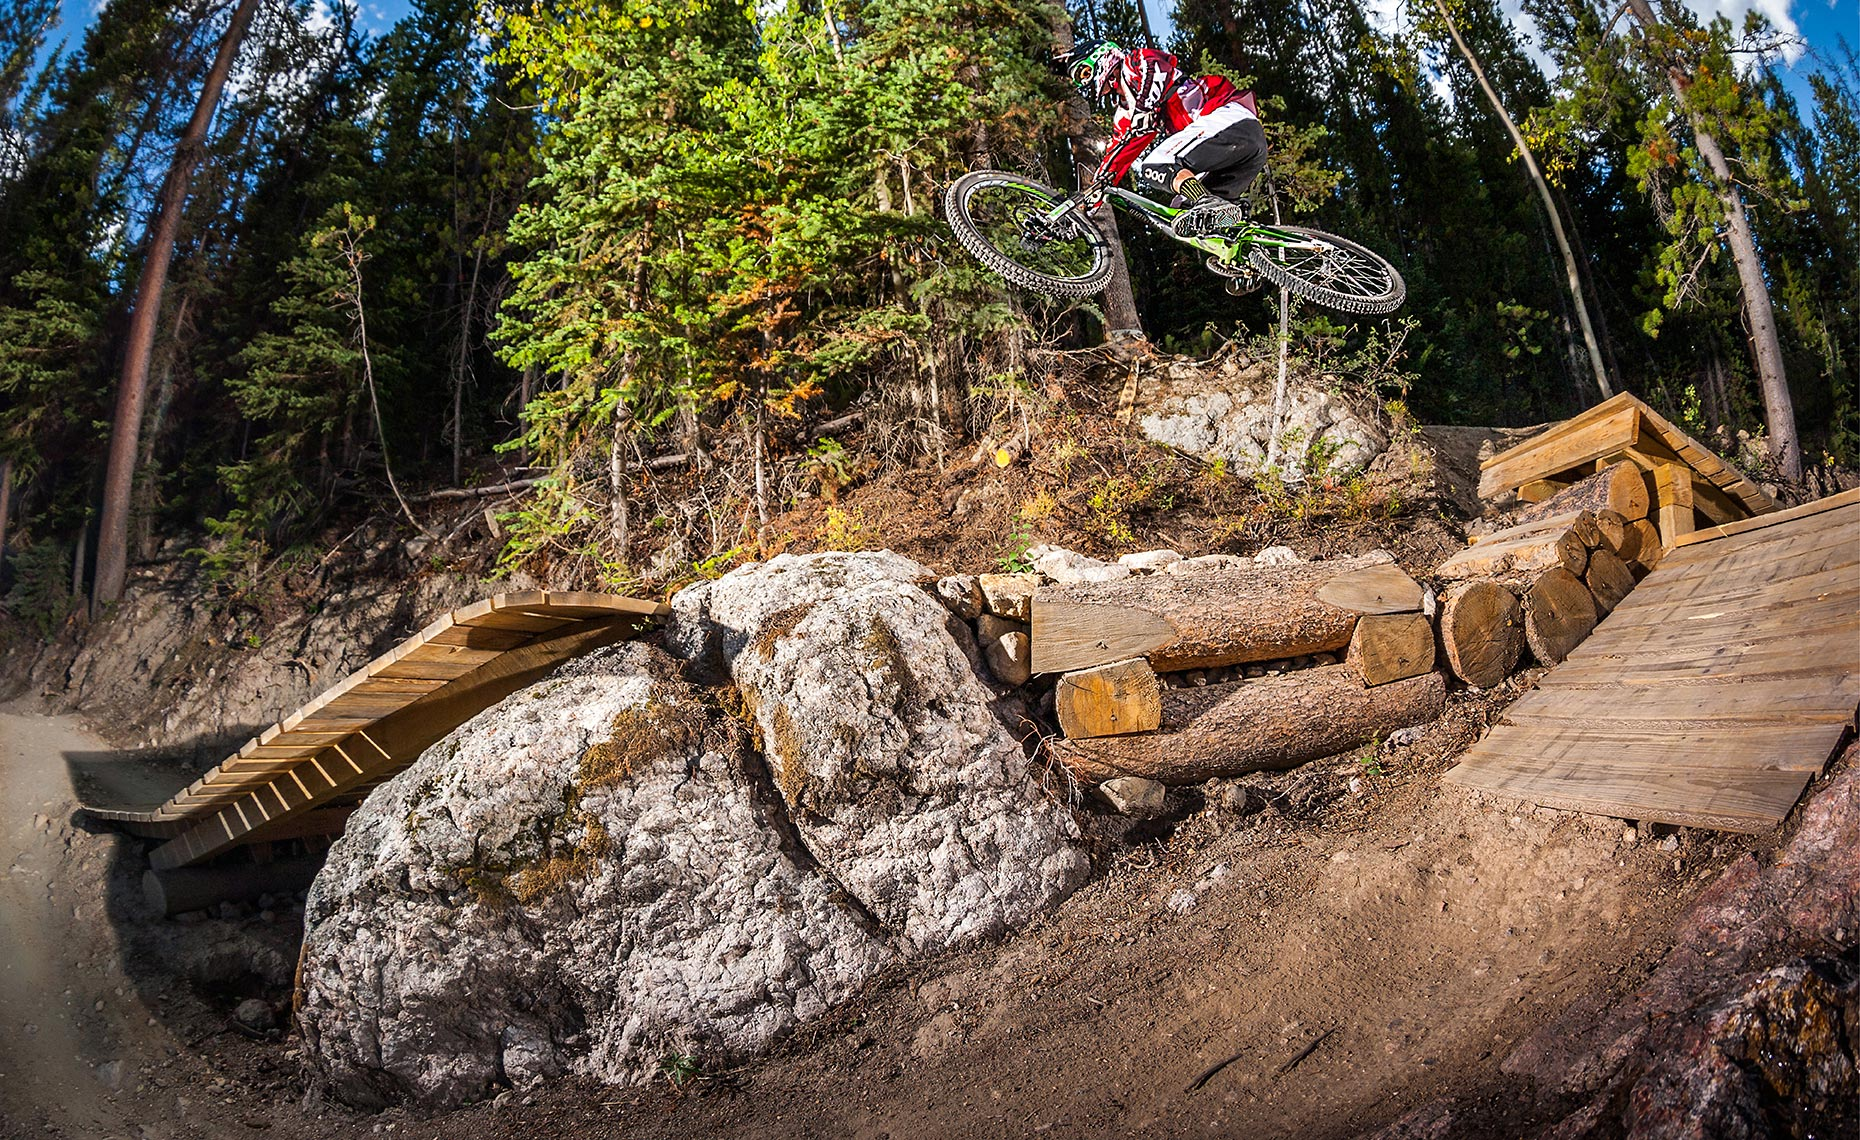 12_Nick_Simcik_Winter_Park_Colorado_Trestle_Bike_Mountain_Biking_Chris_Wellhausen_Photography.JPG